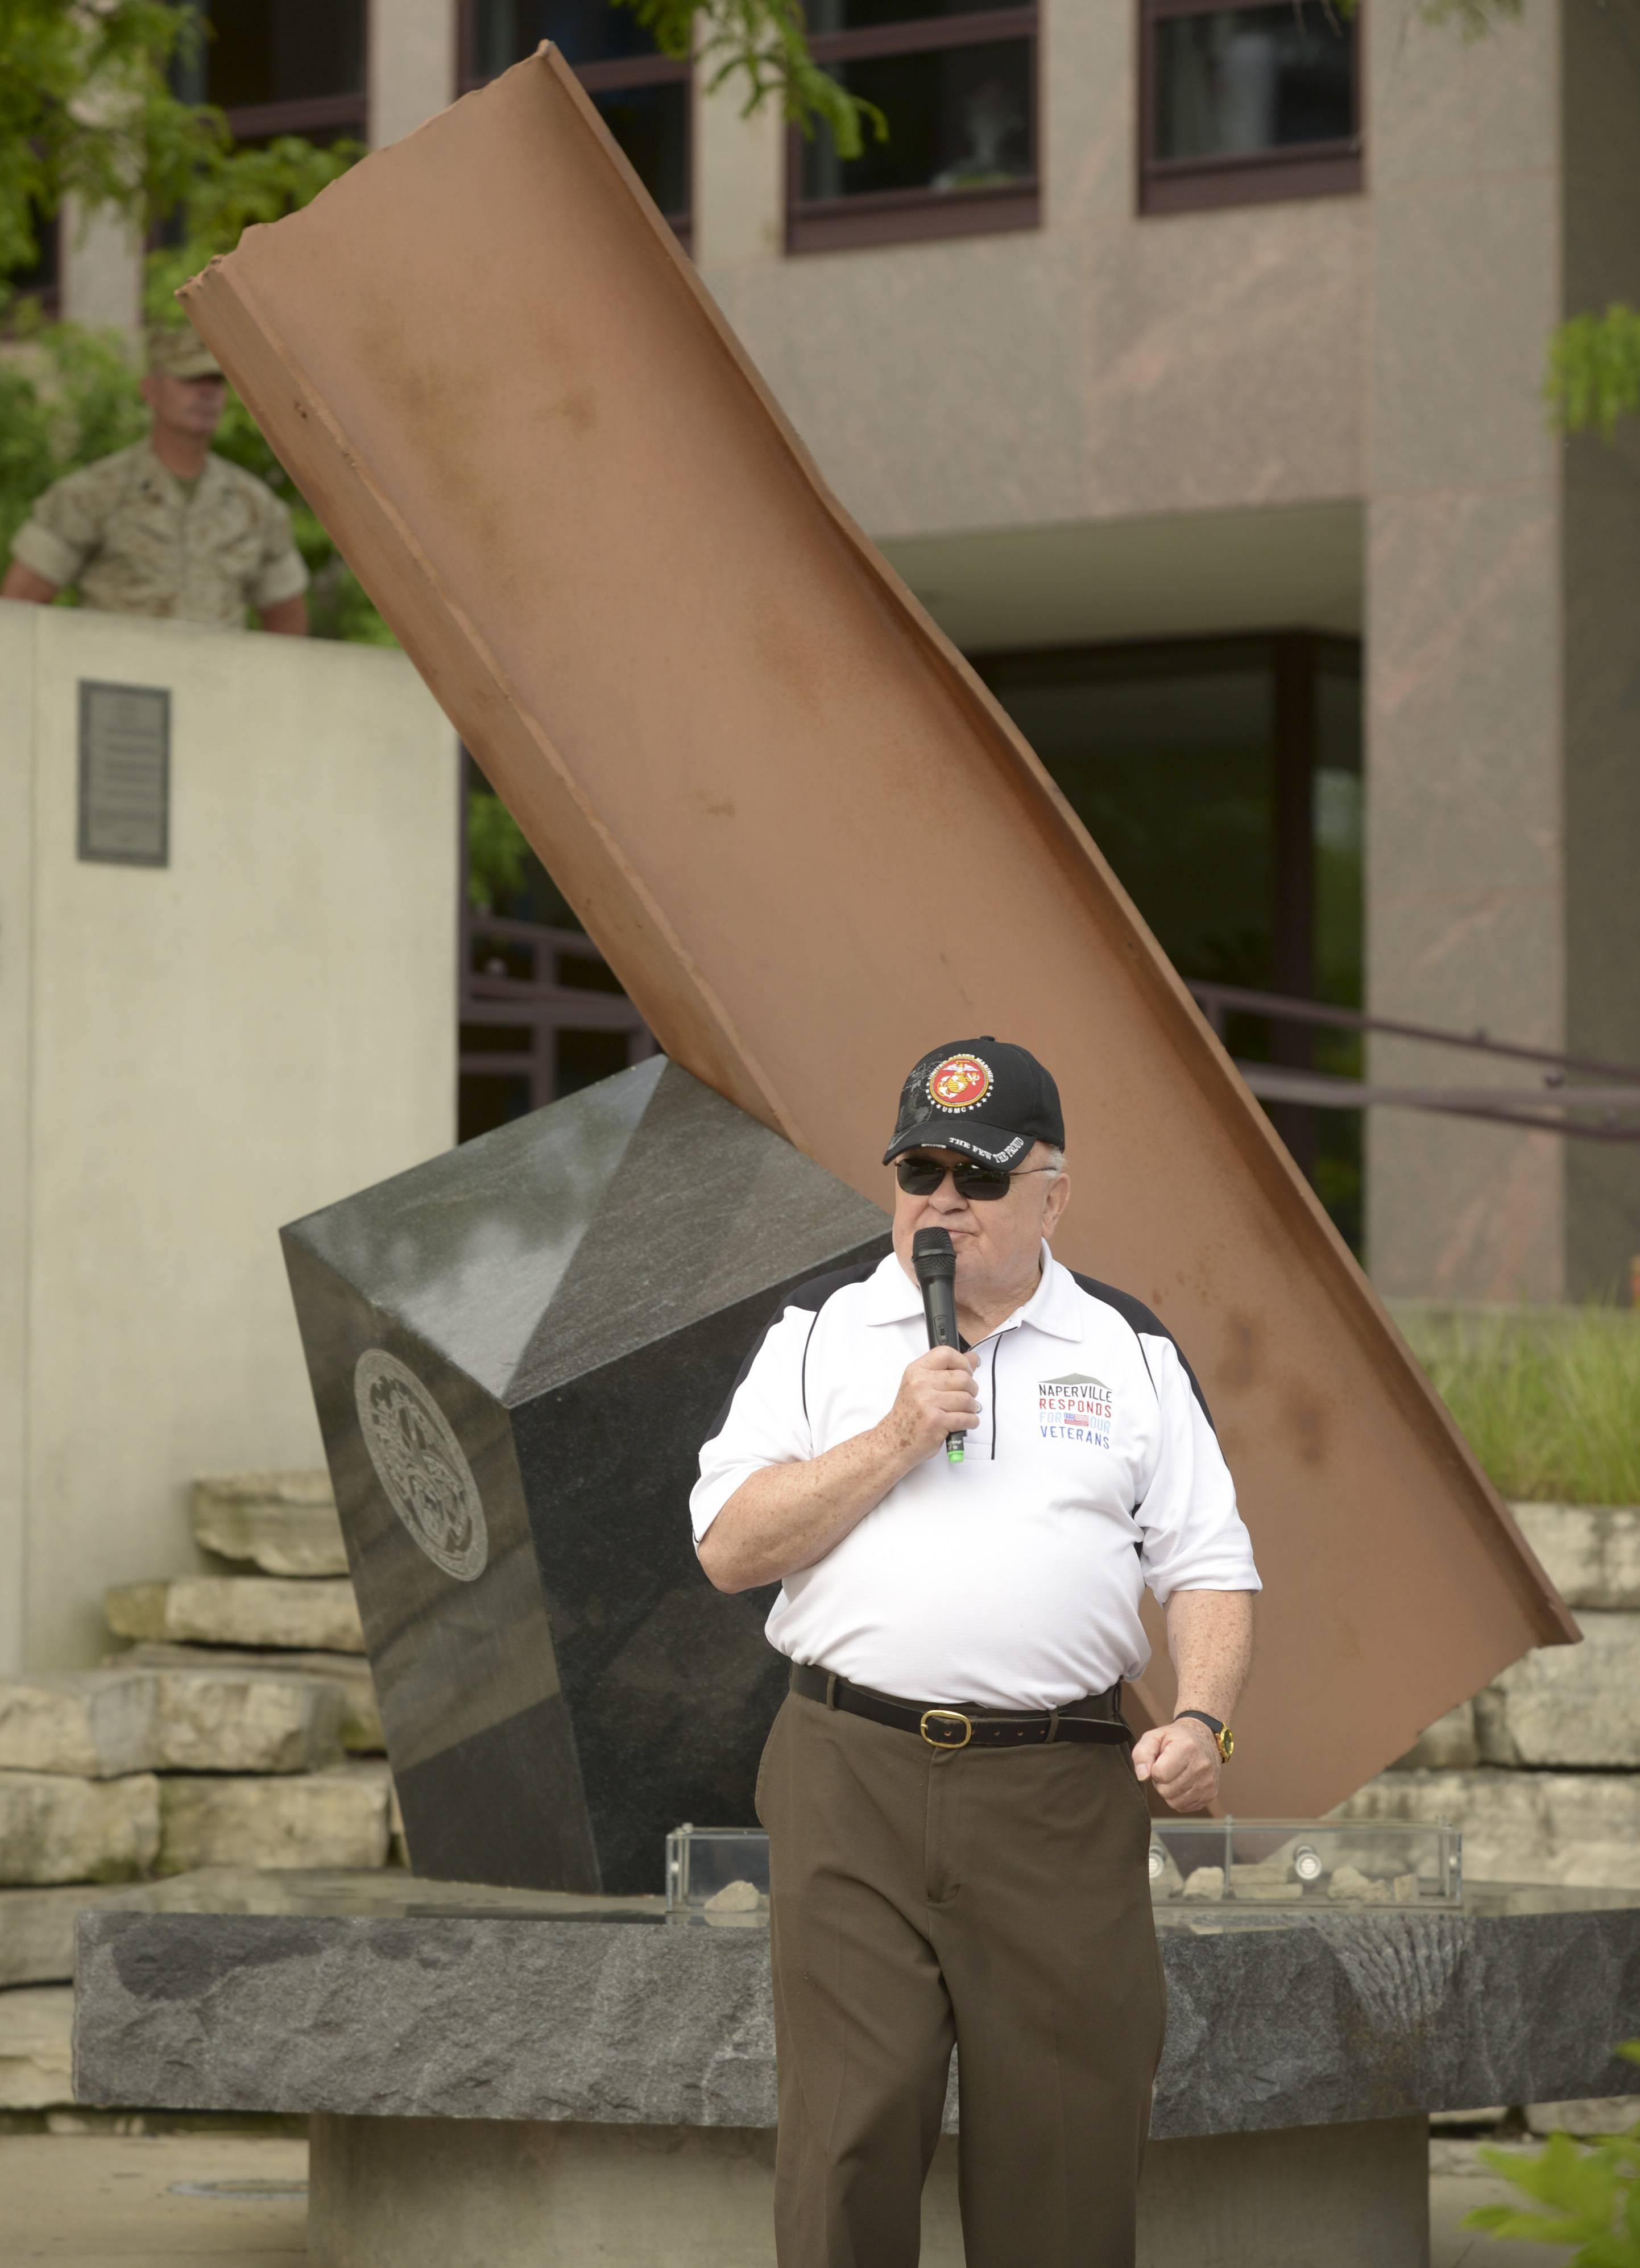 Mayor George Pradel speaks during the Naperville Memorial Day service at the Cmdr. Dan Shanower/Sept. 11 memorial, Monday.